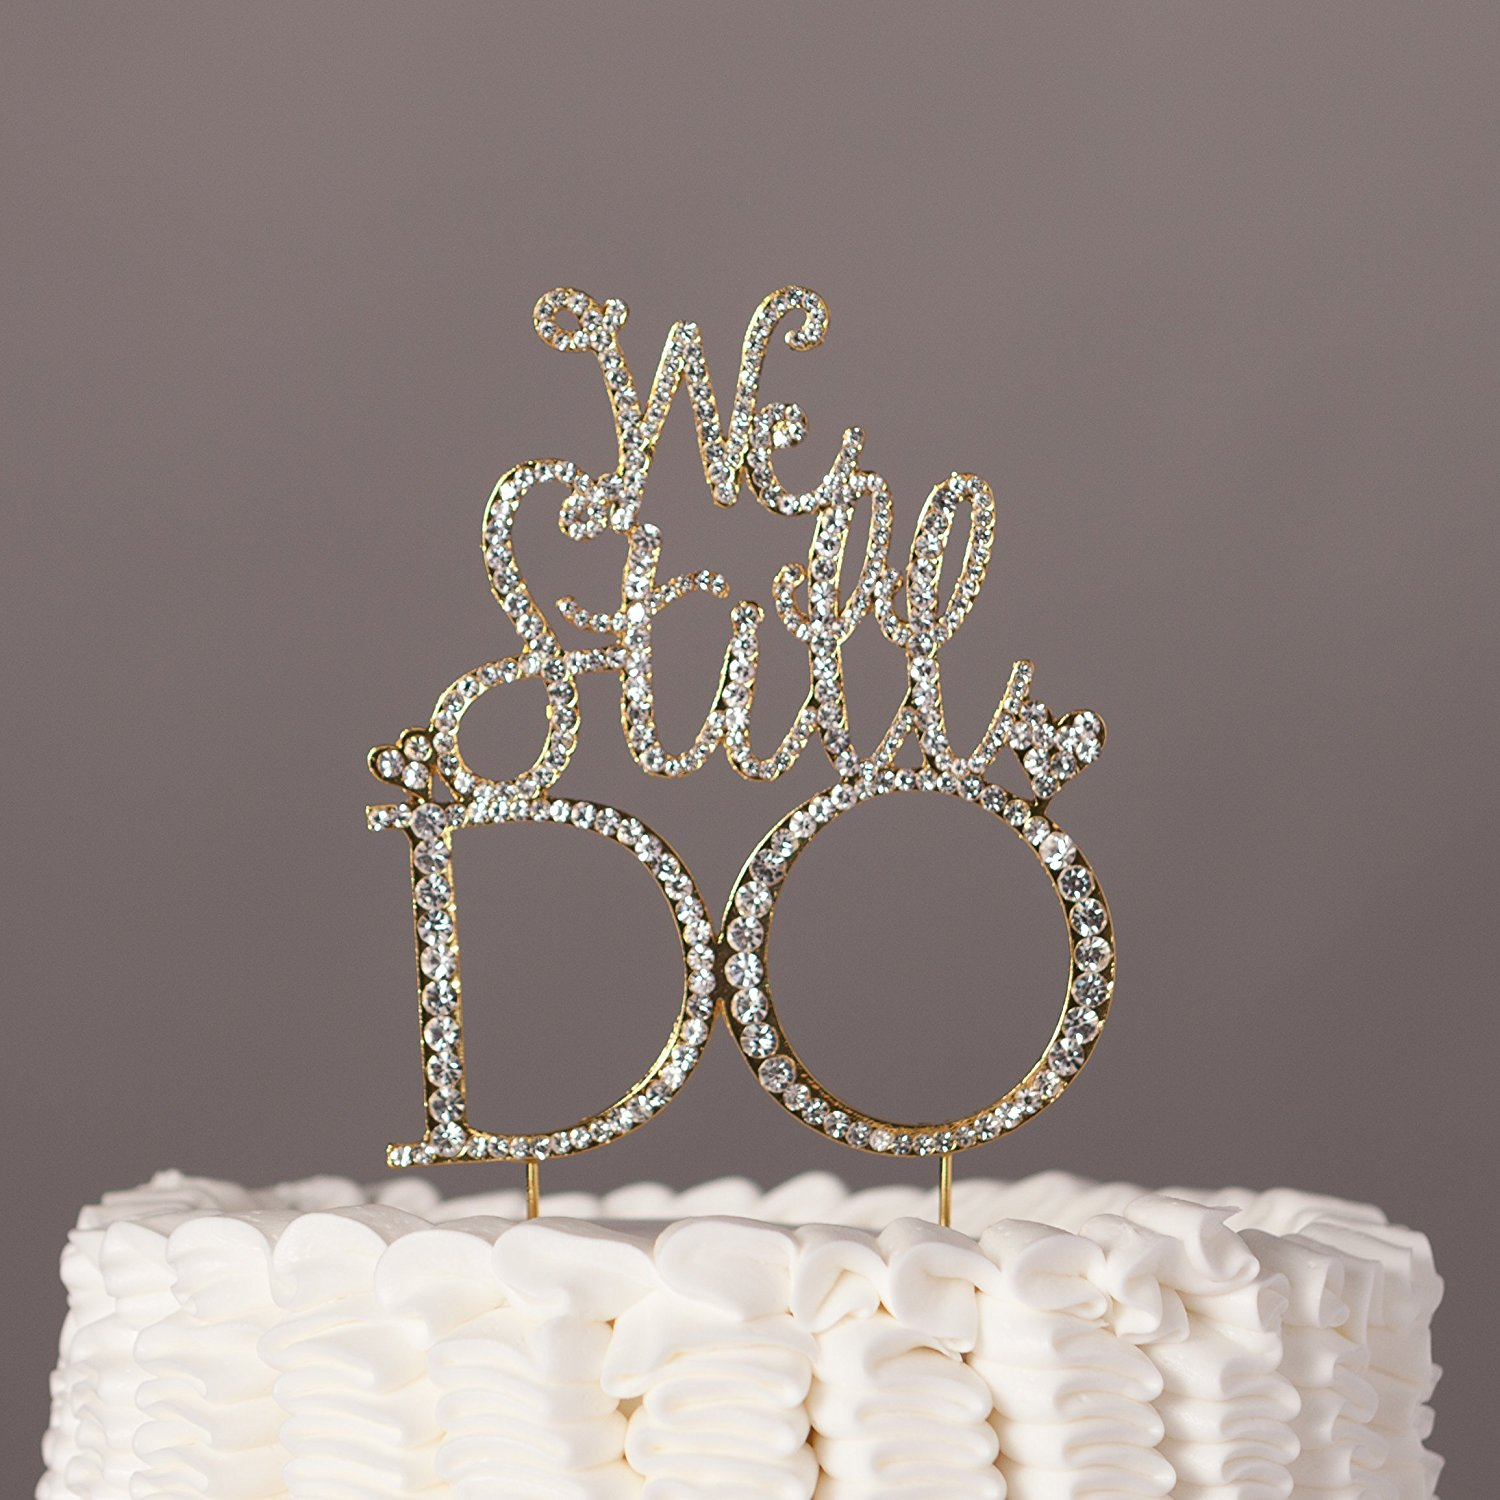 We Still Do Cake Topper, Gold Anniversary Vow Renewal Party Rhinestone Decoration (Gold)